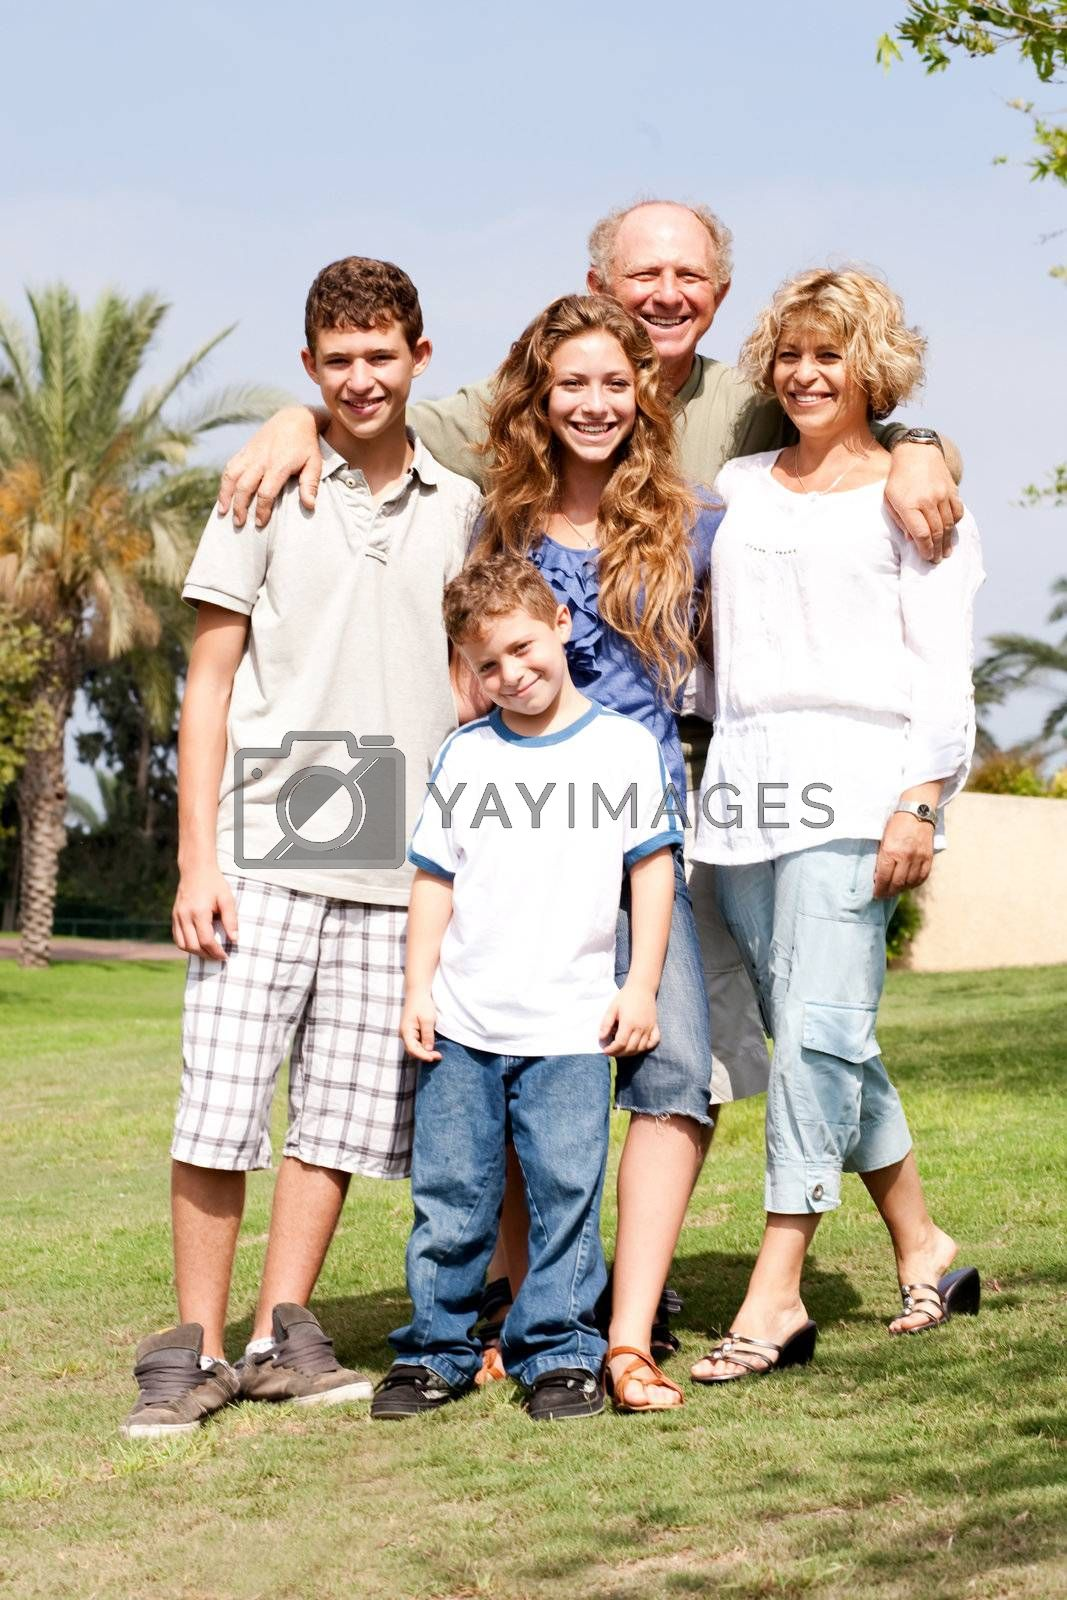 Grandparents with their children posing in the park, outdoors